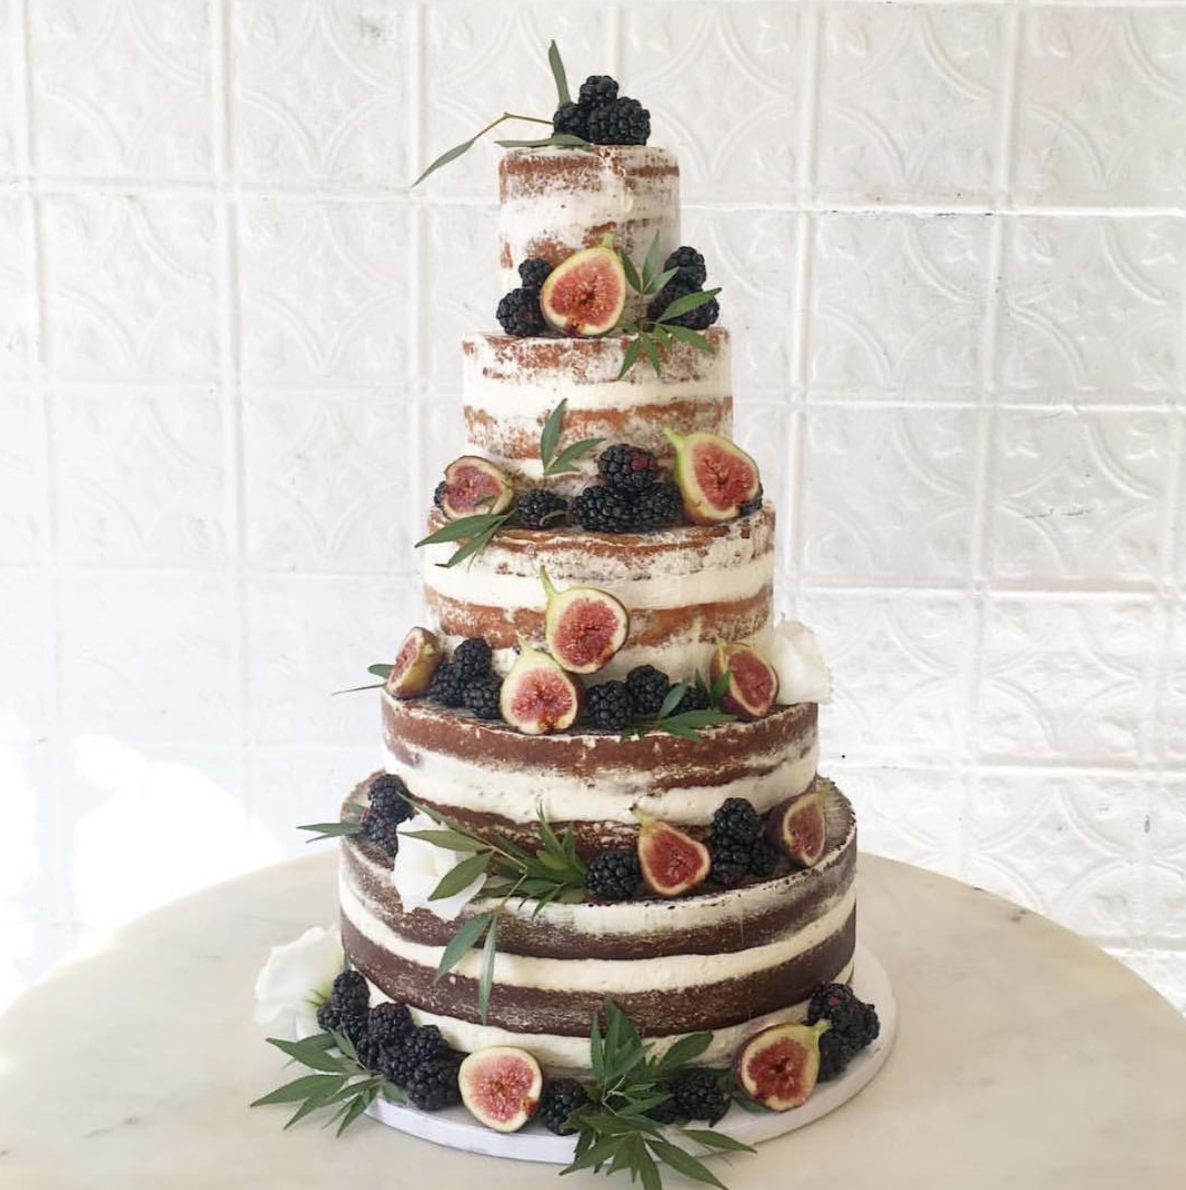 Luckybird Bakery | Luckybird — Hand crafted cakes & confections.